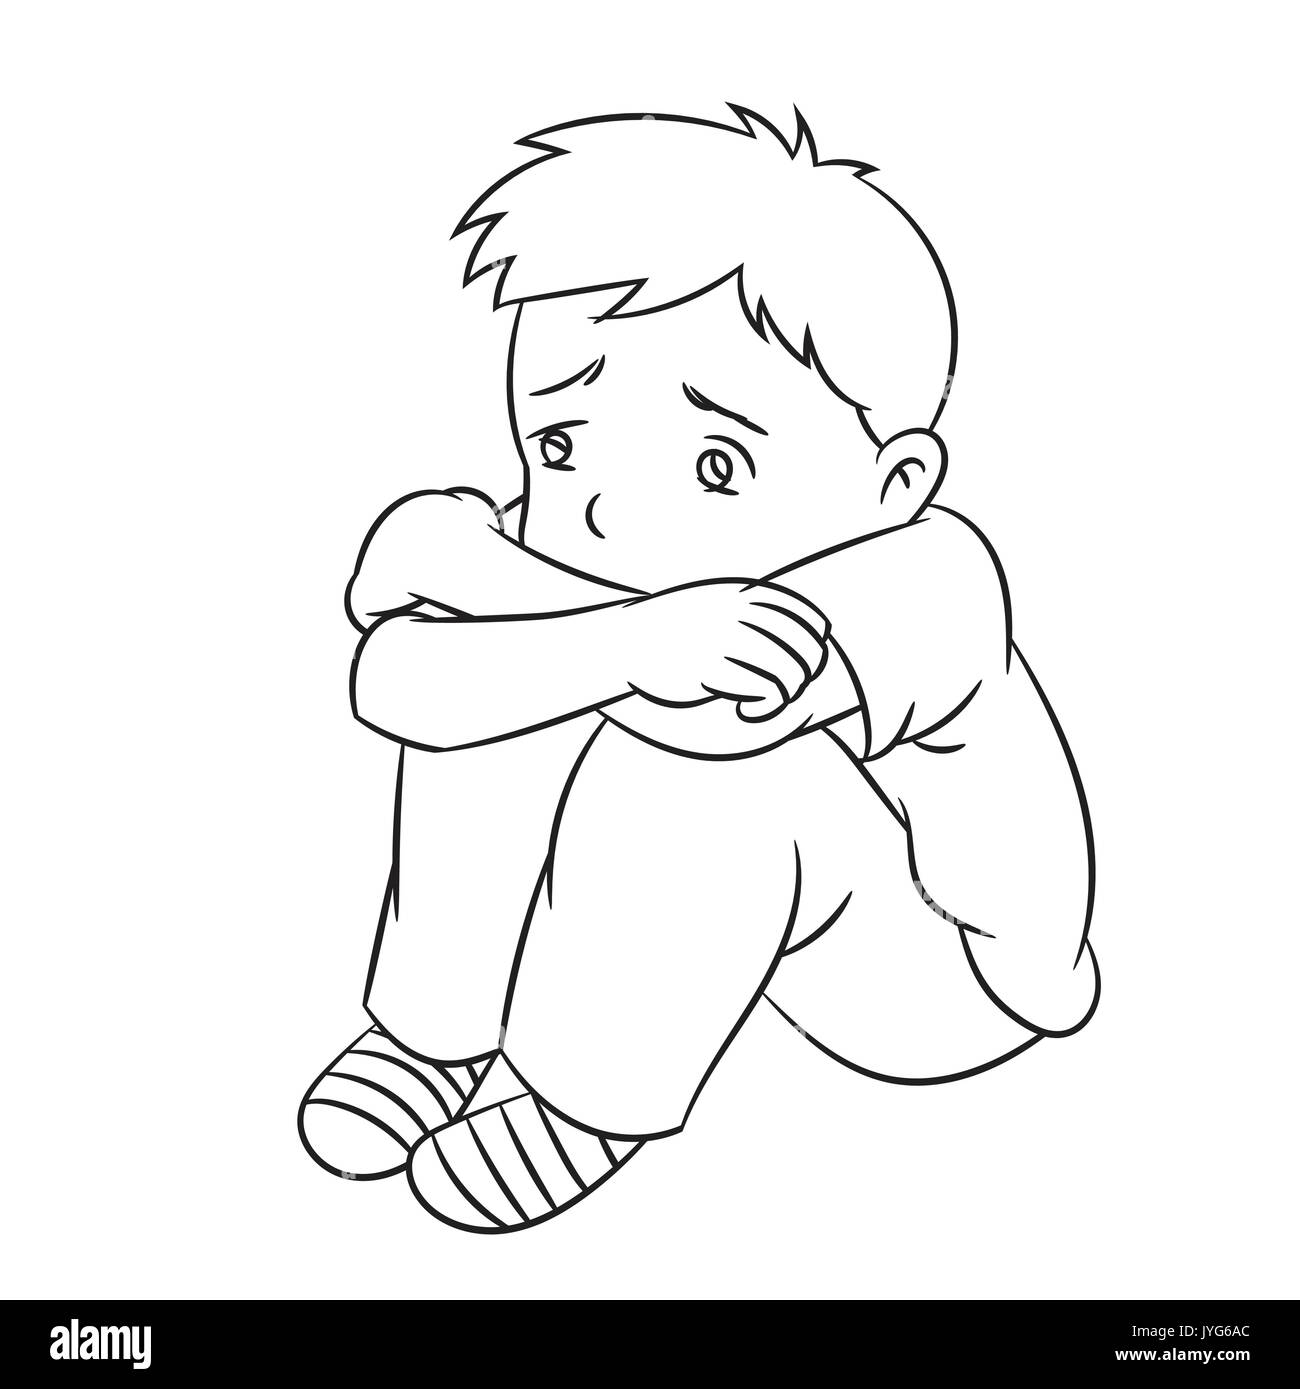 Cartoon of a boy sad and lonely child or student ideal for catalogs informational educational and institutional material